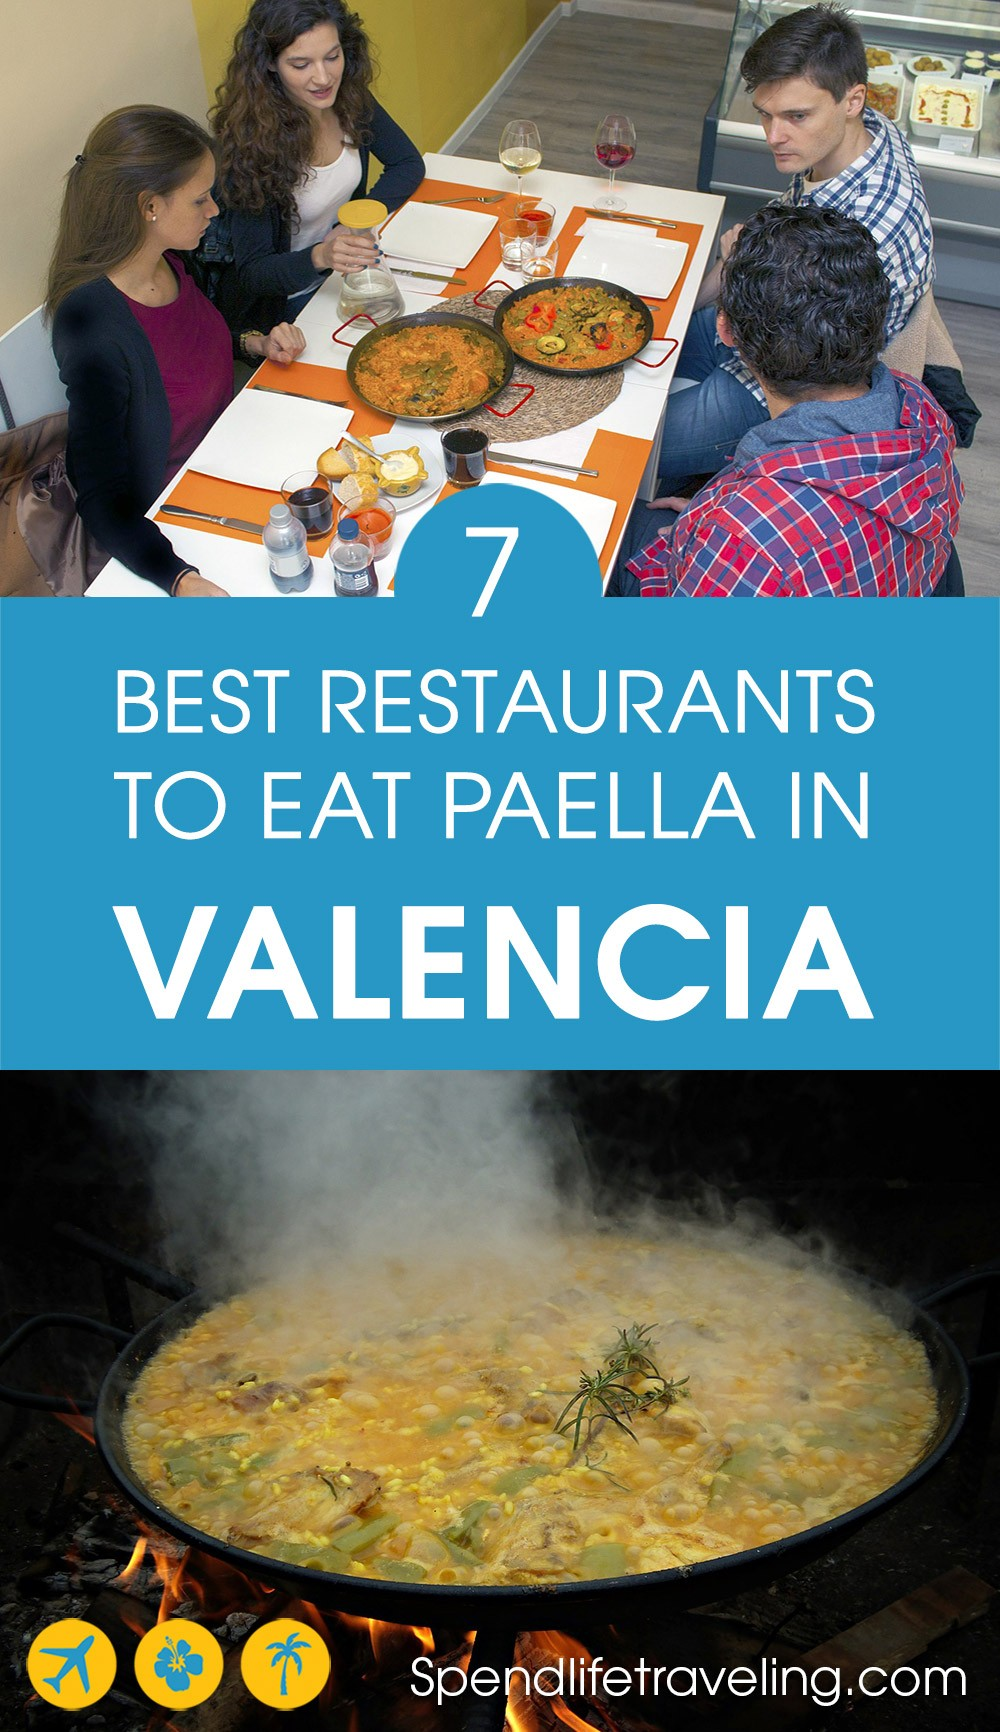 7 restaurants to eat paella in Valencia